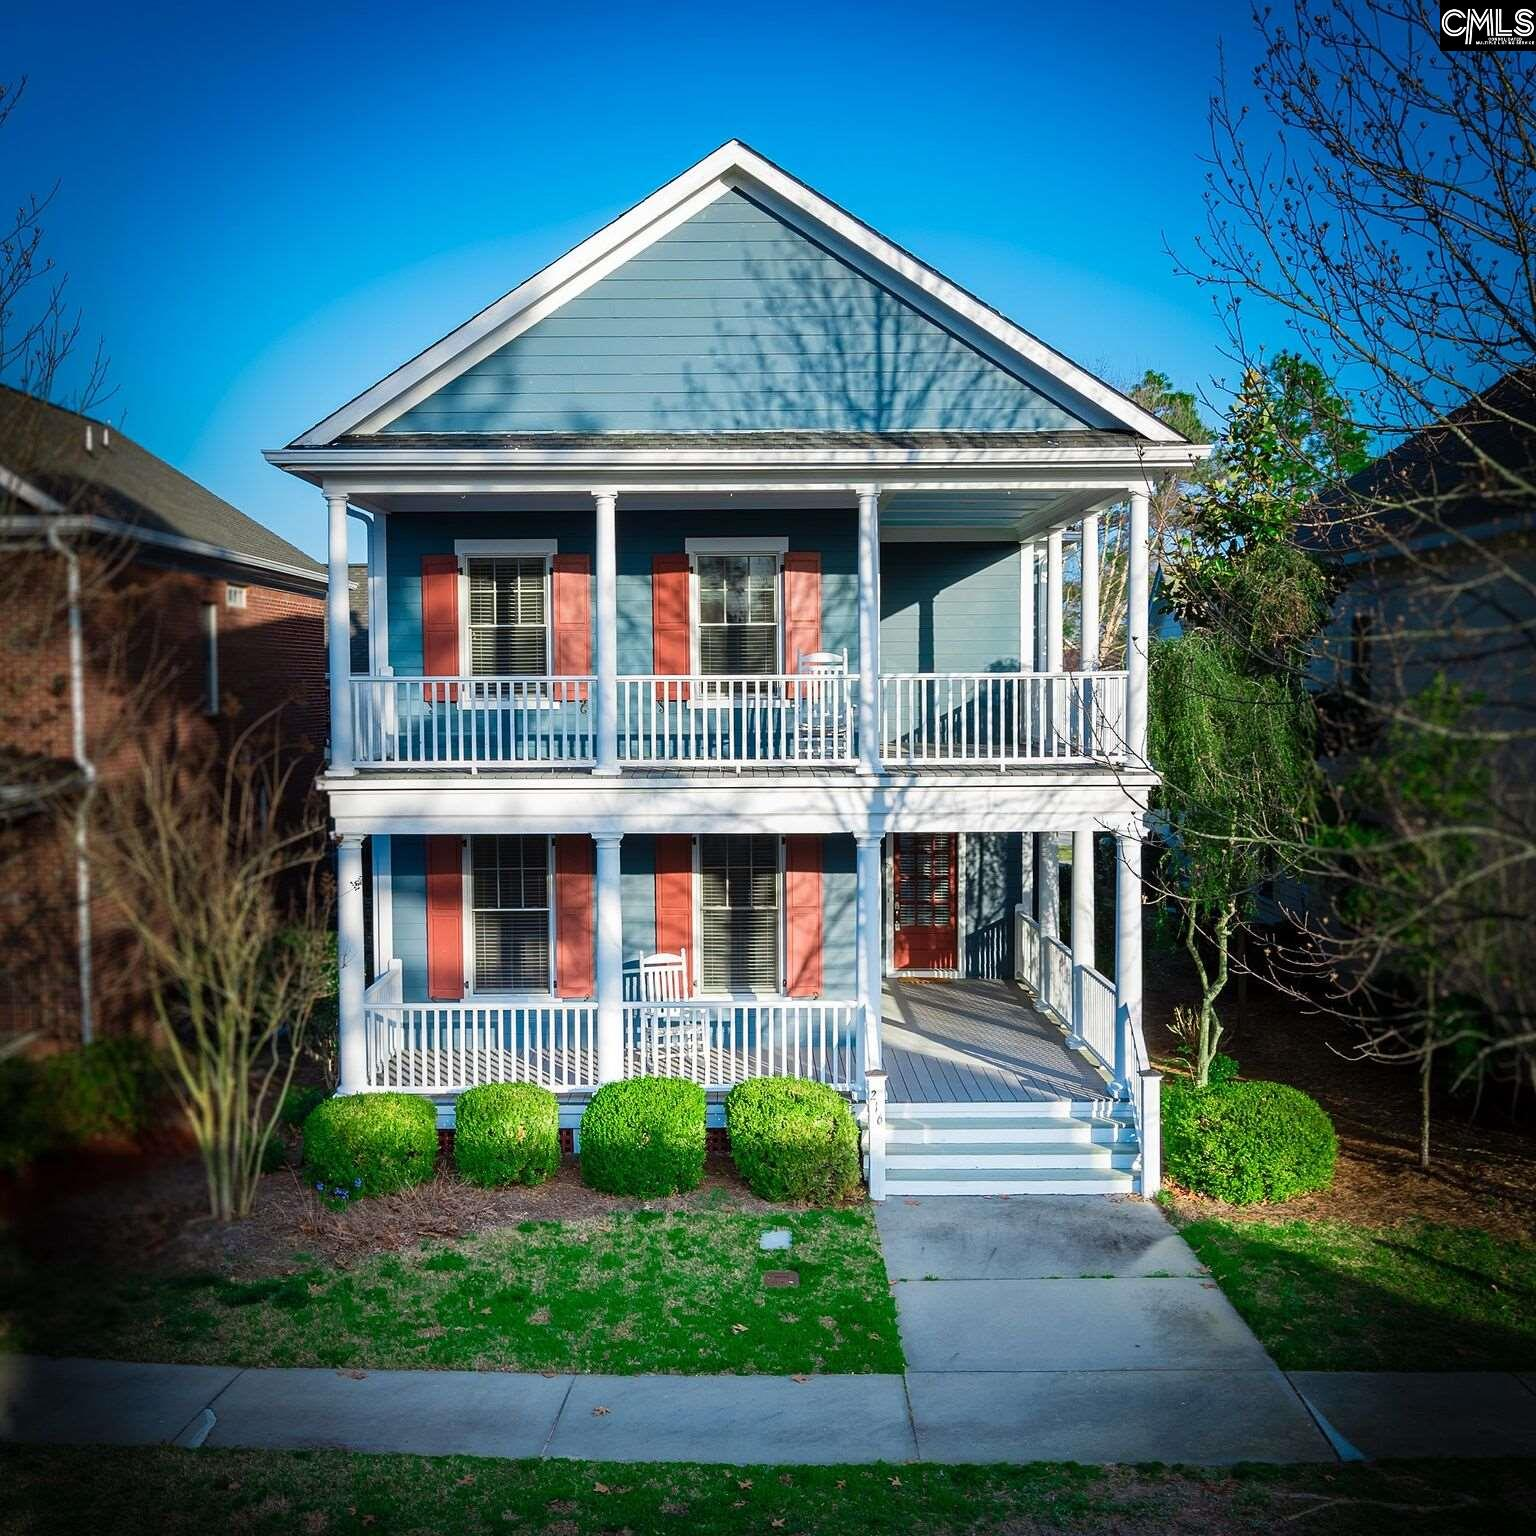 216 Ansonborough Columbia, SC 29229